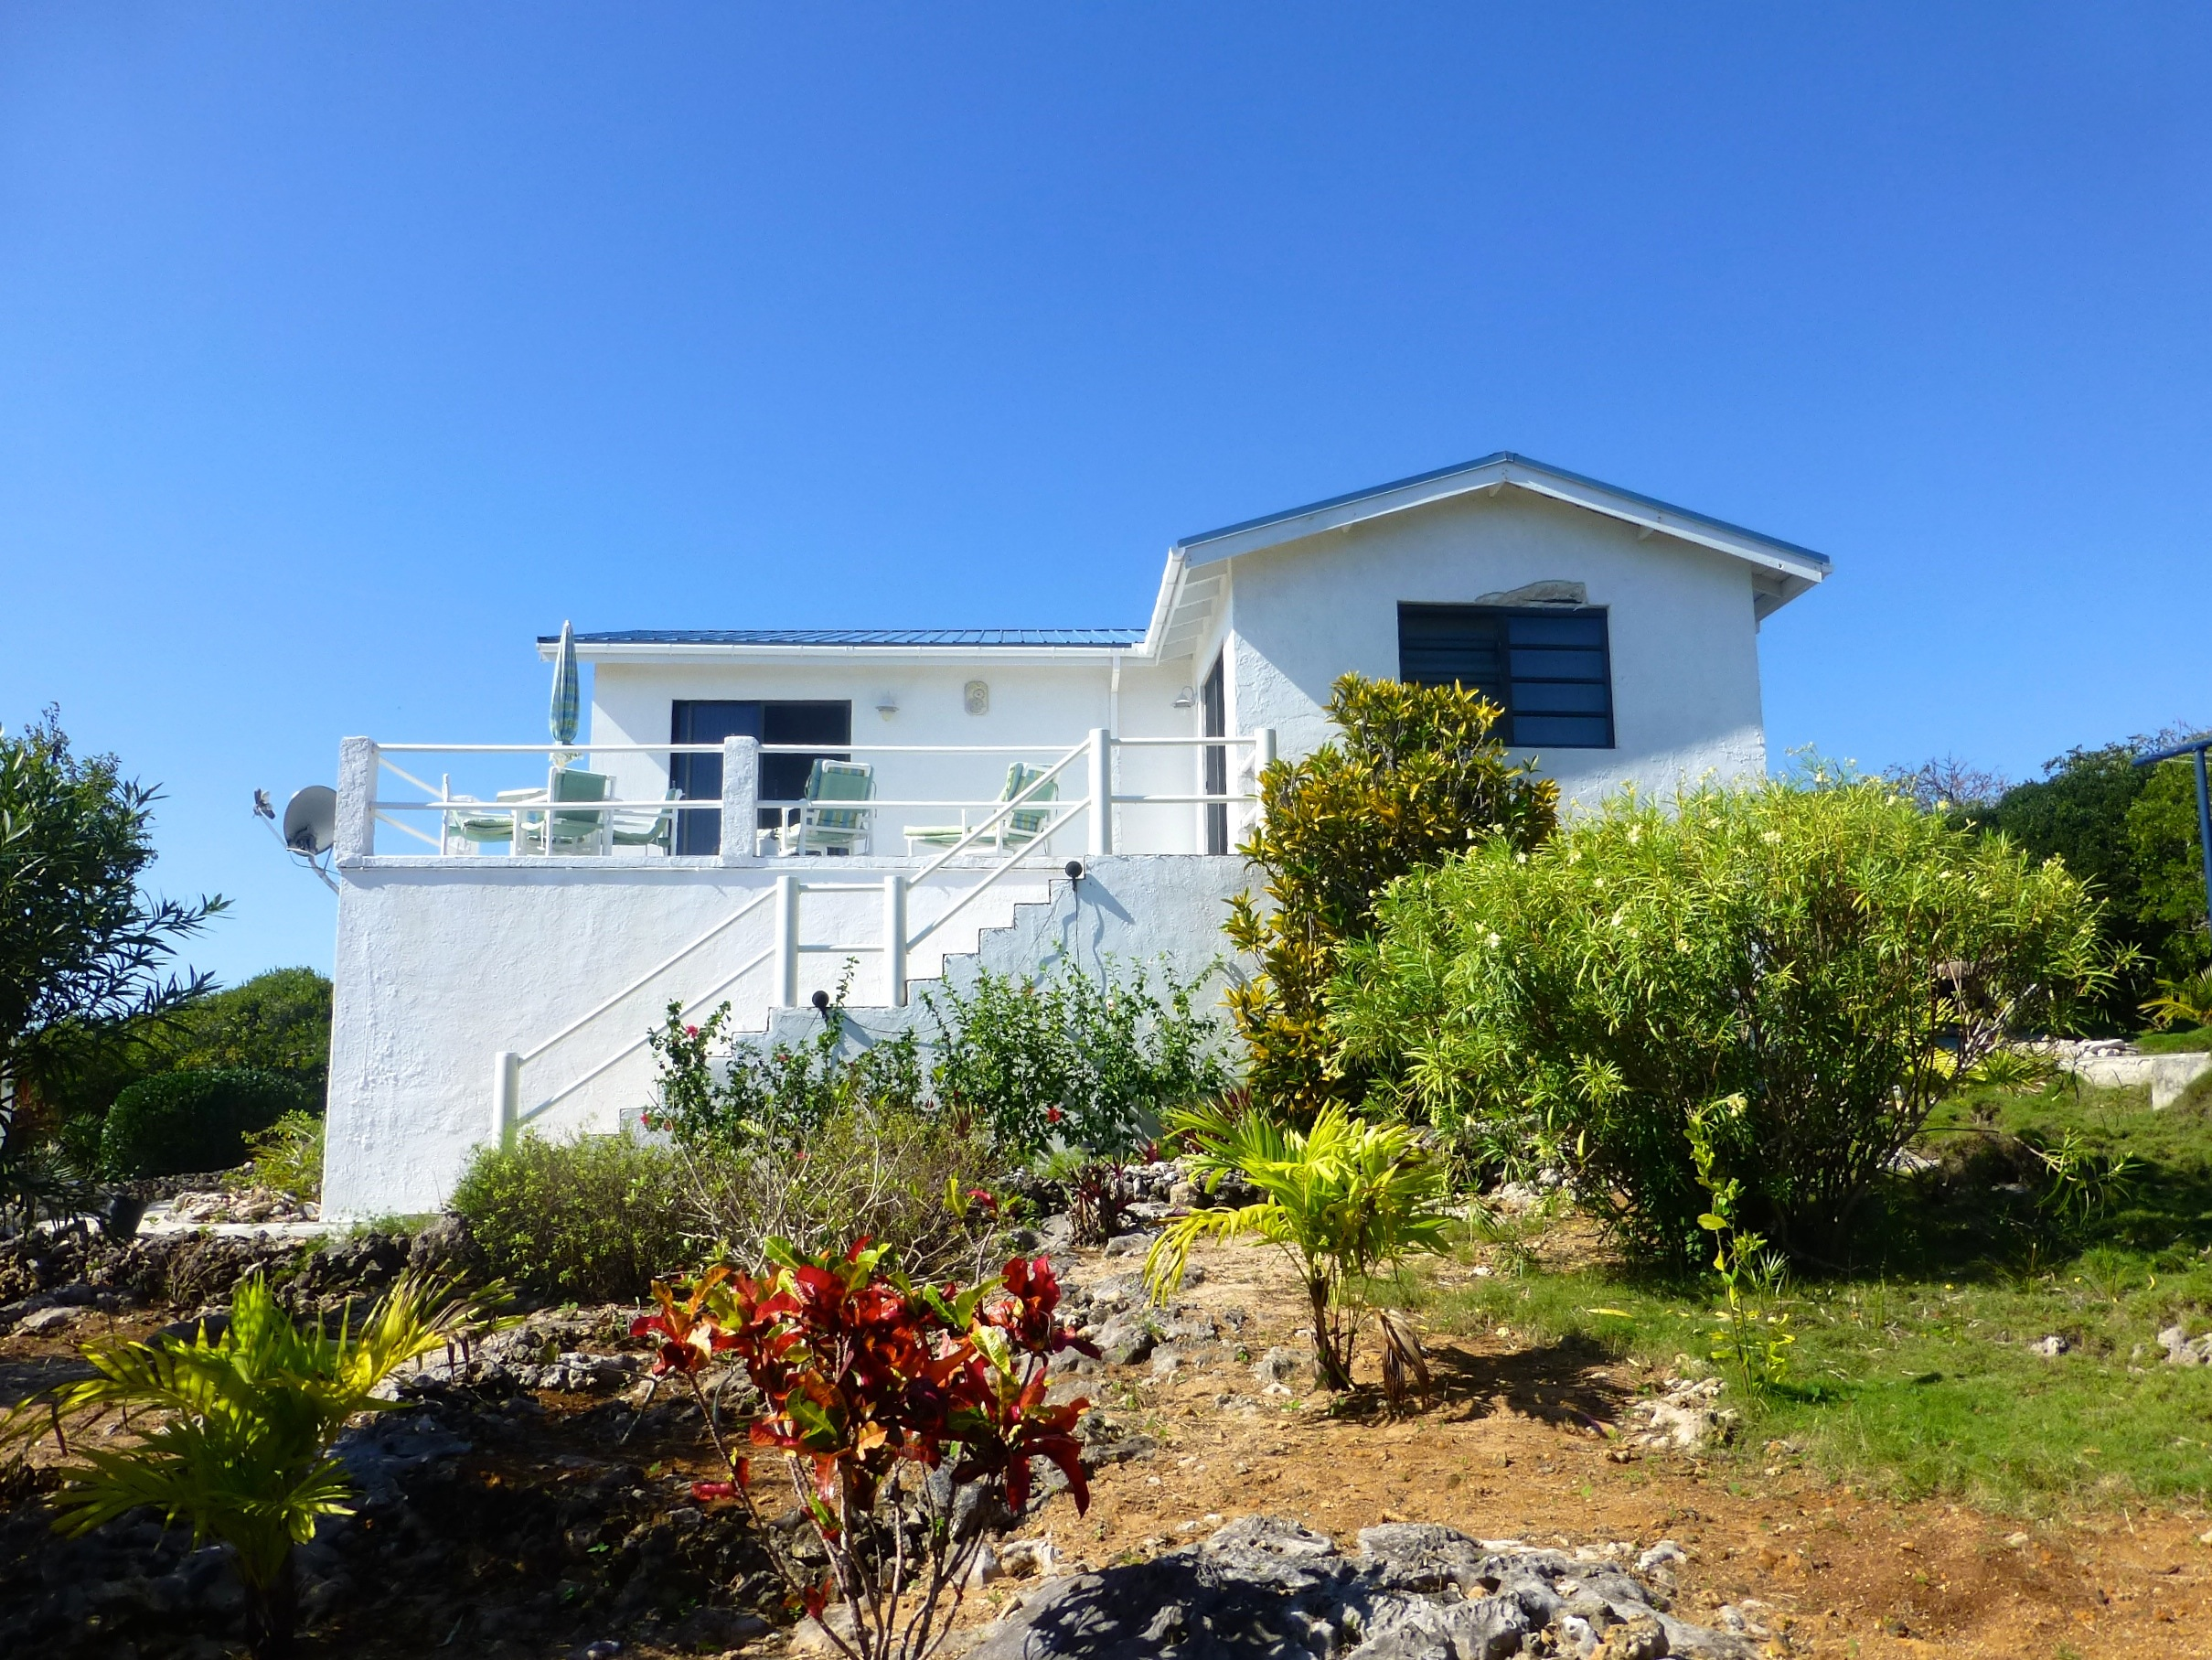 Additional photo for property listing at Rainbows End 彩虹湾, 伊路瑟拉 巴哈马